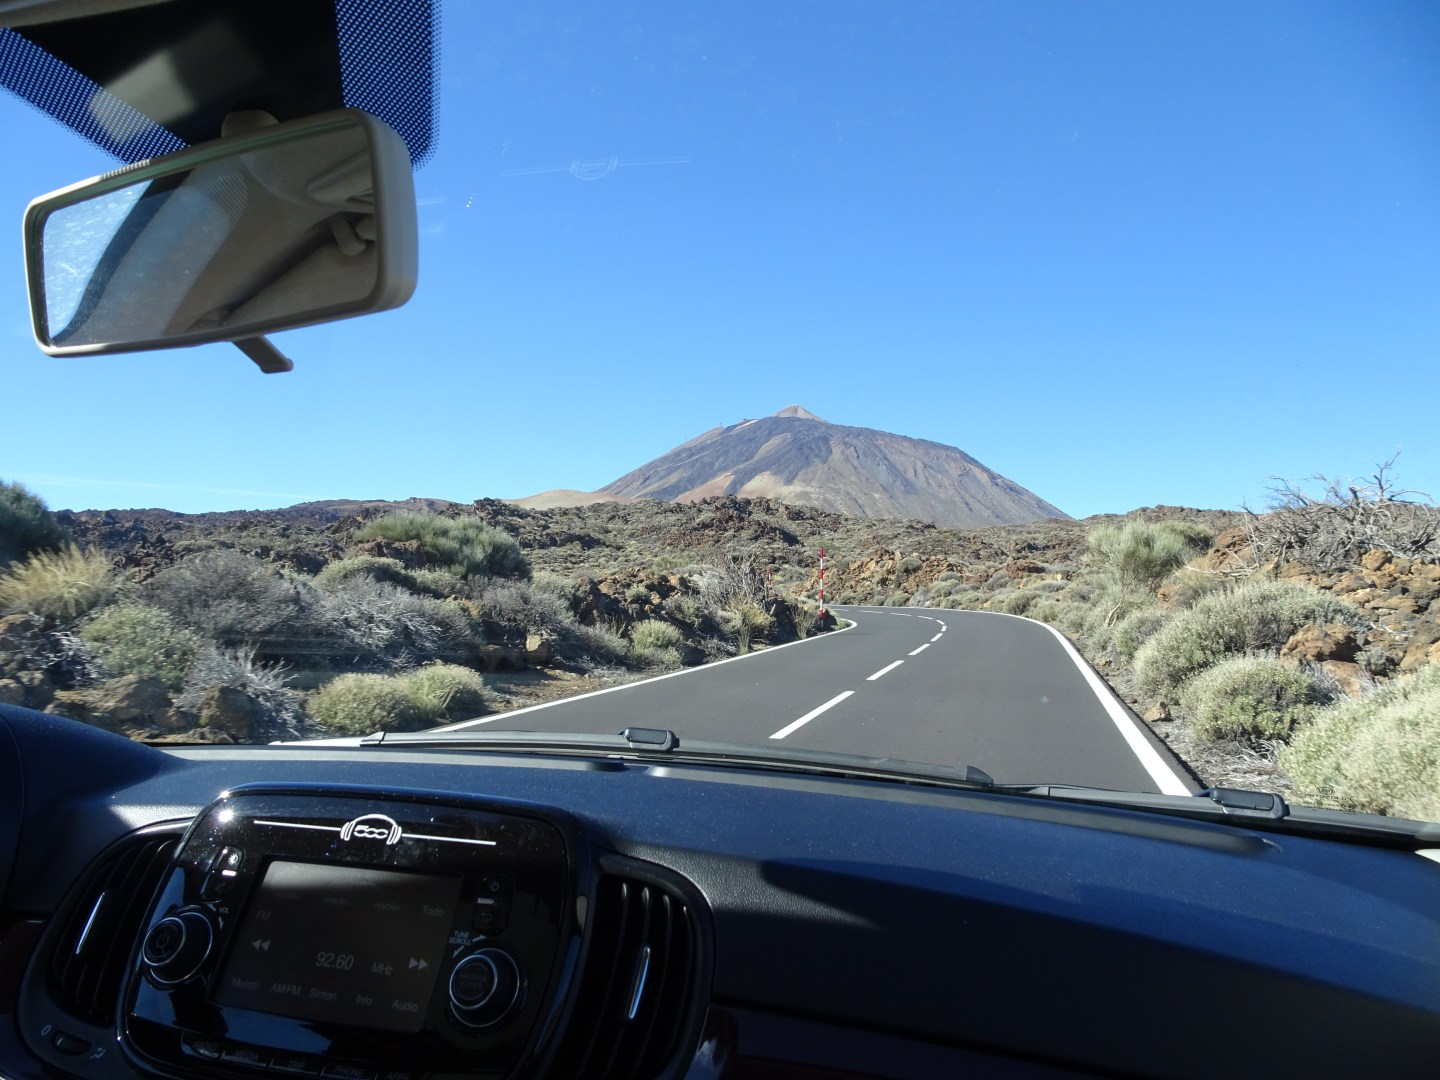 Driving to Mount Teide in Tenerife